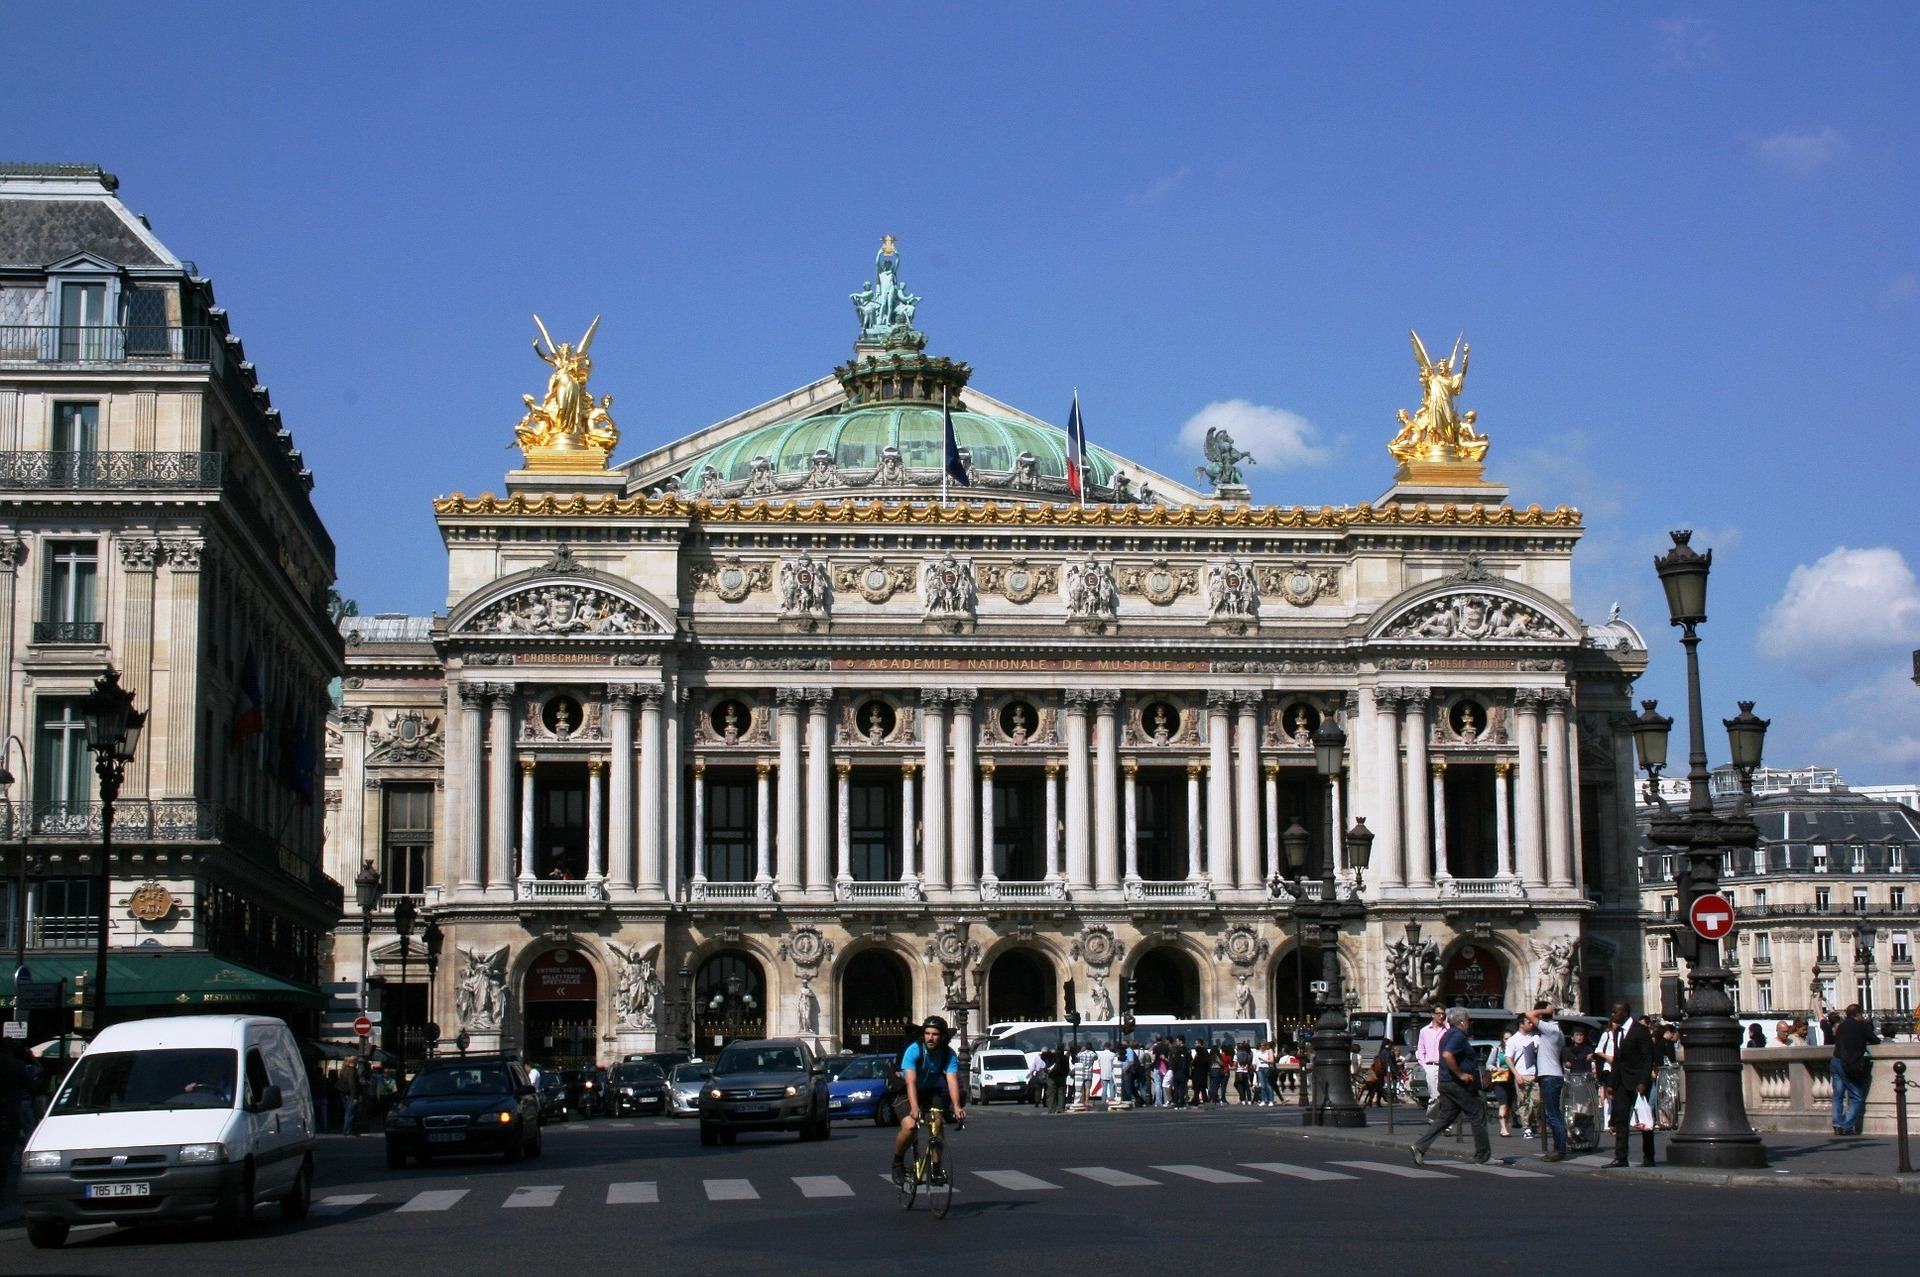 Palais Garnier (Paris Opera House), Paris, France